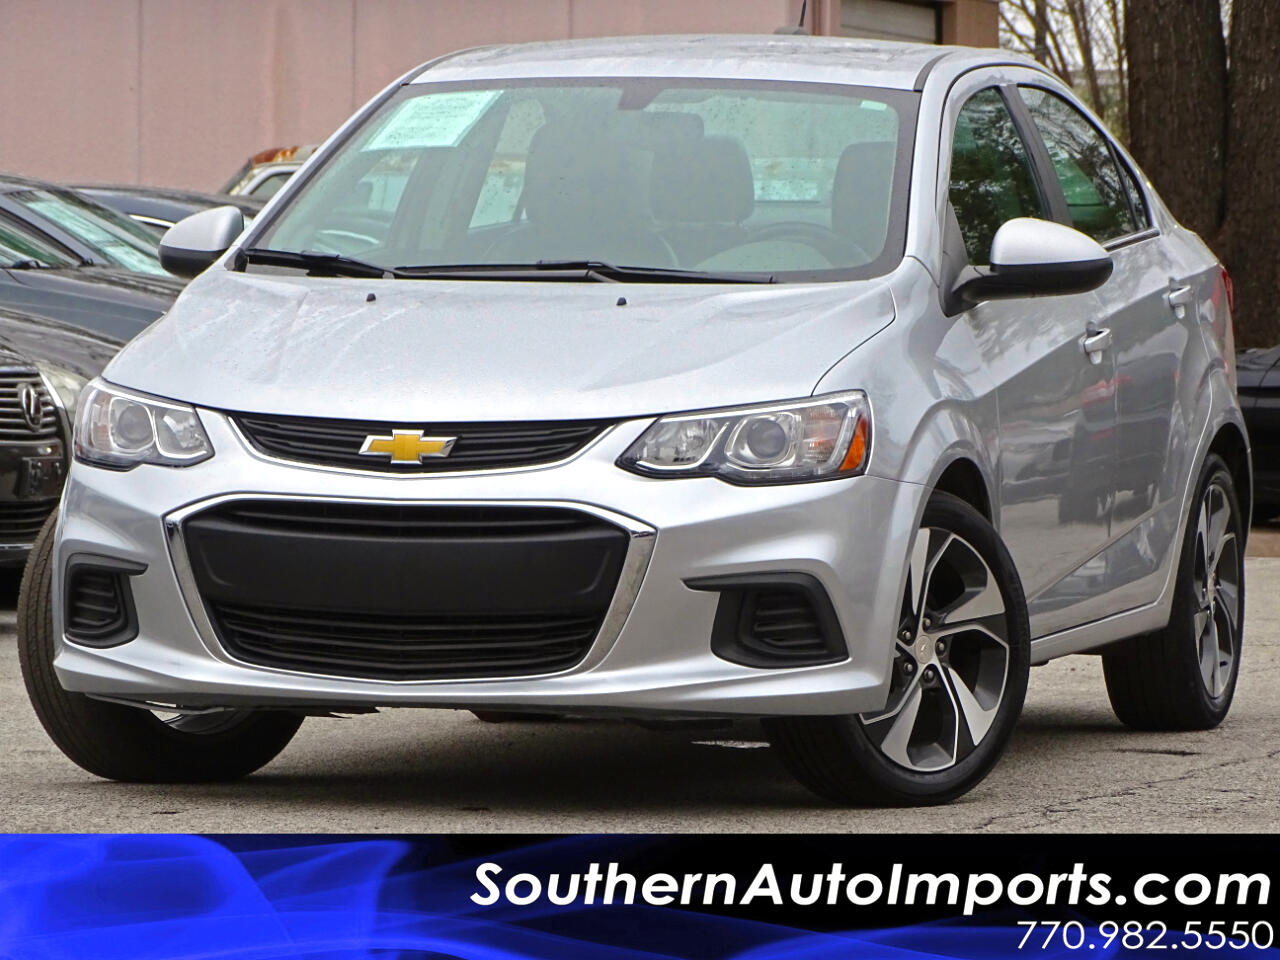 2017 Chevrolet Sonic Auto Premier w/Back up Camera